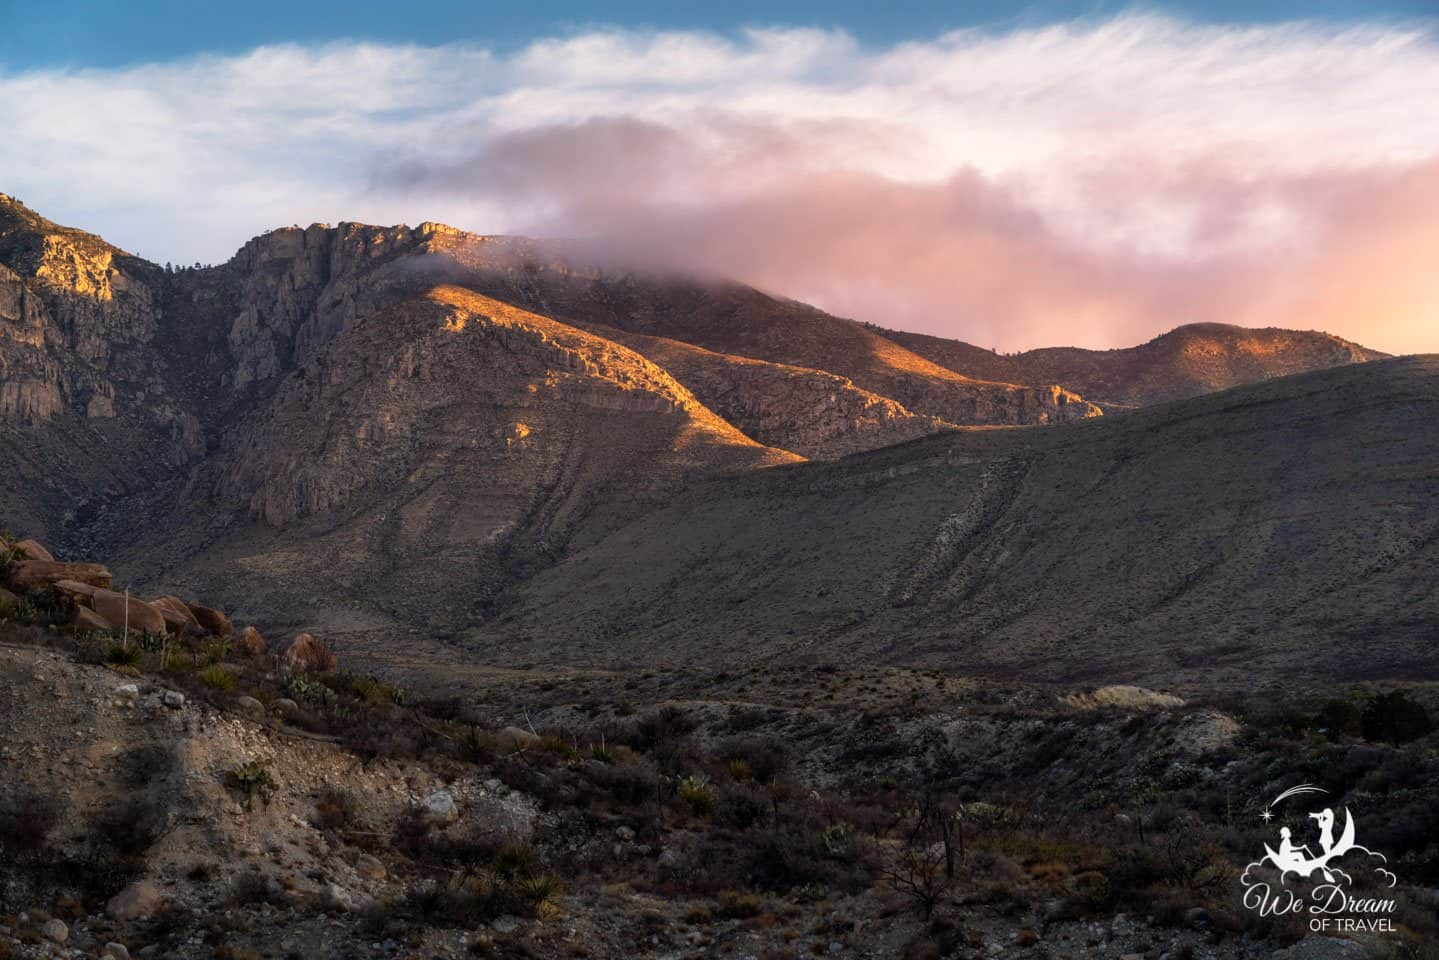 Sunrise colors gracing the landscape in Guadalupe Mountains National Park.